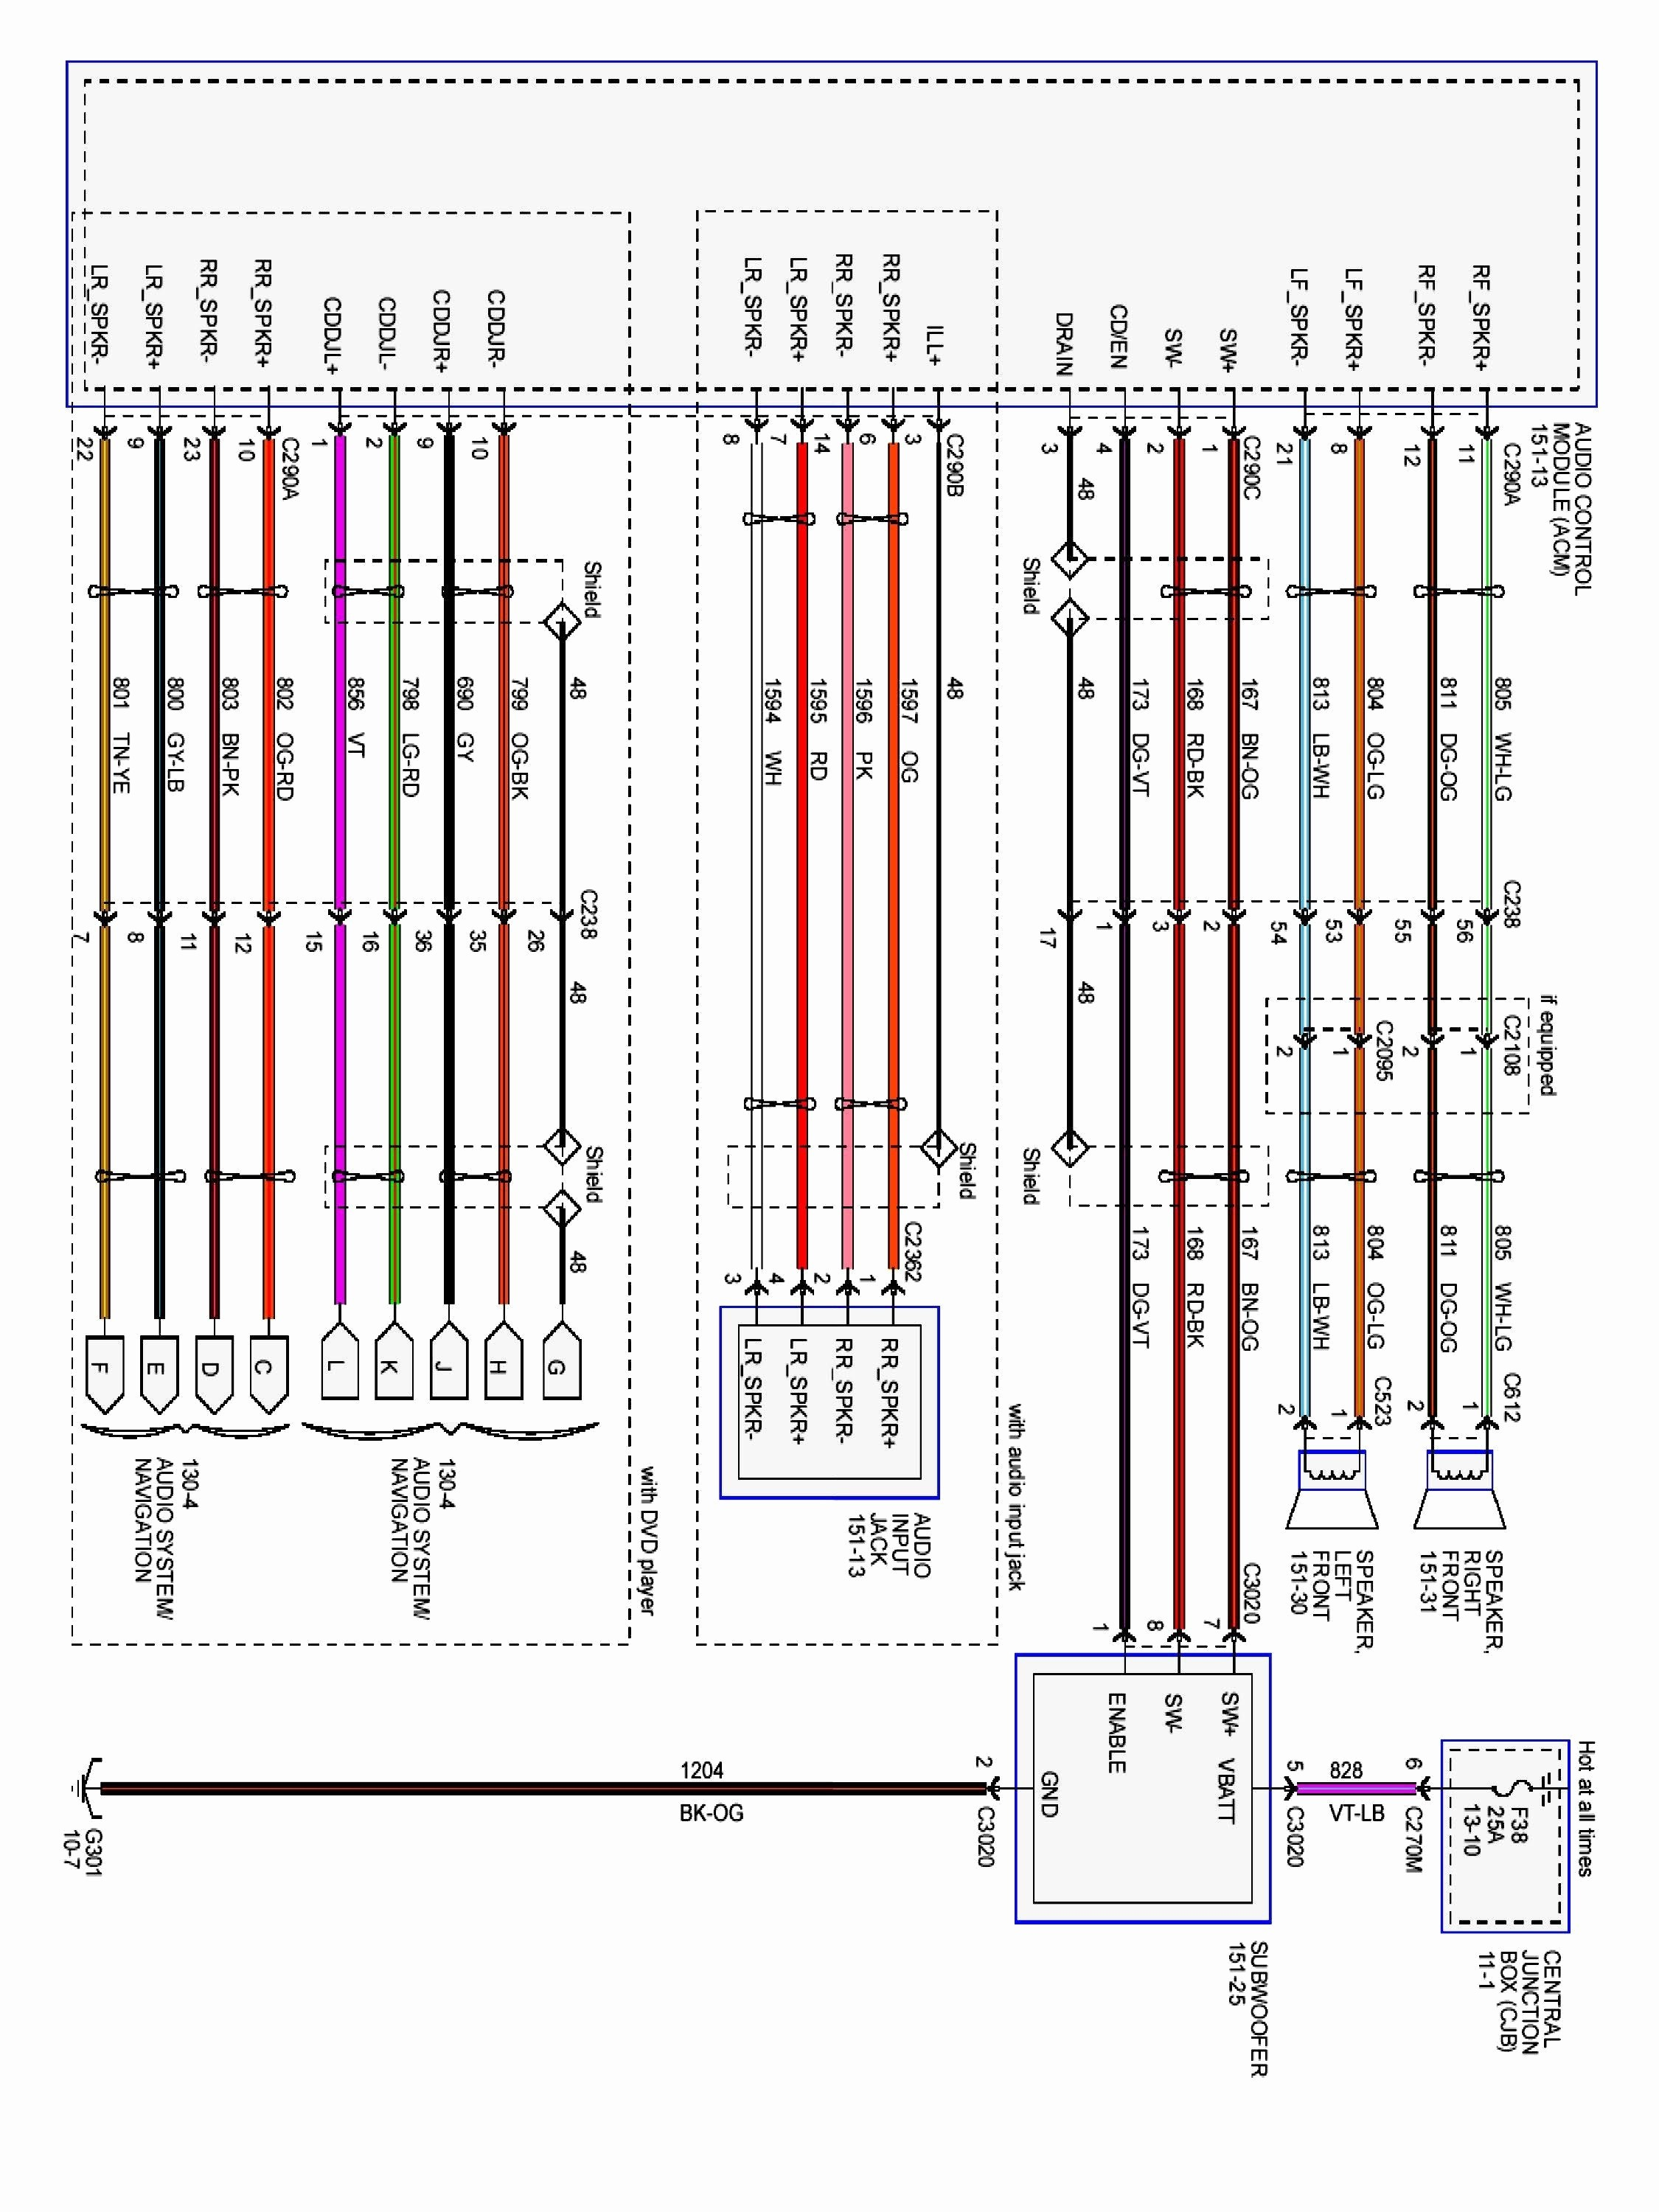 98 F150 Wiring Diagram 97 ford F 150 4 Way Trailer Wiring Diagram Data Wiring  Diagrams